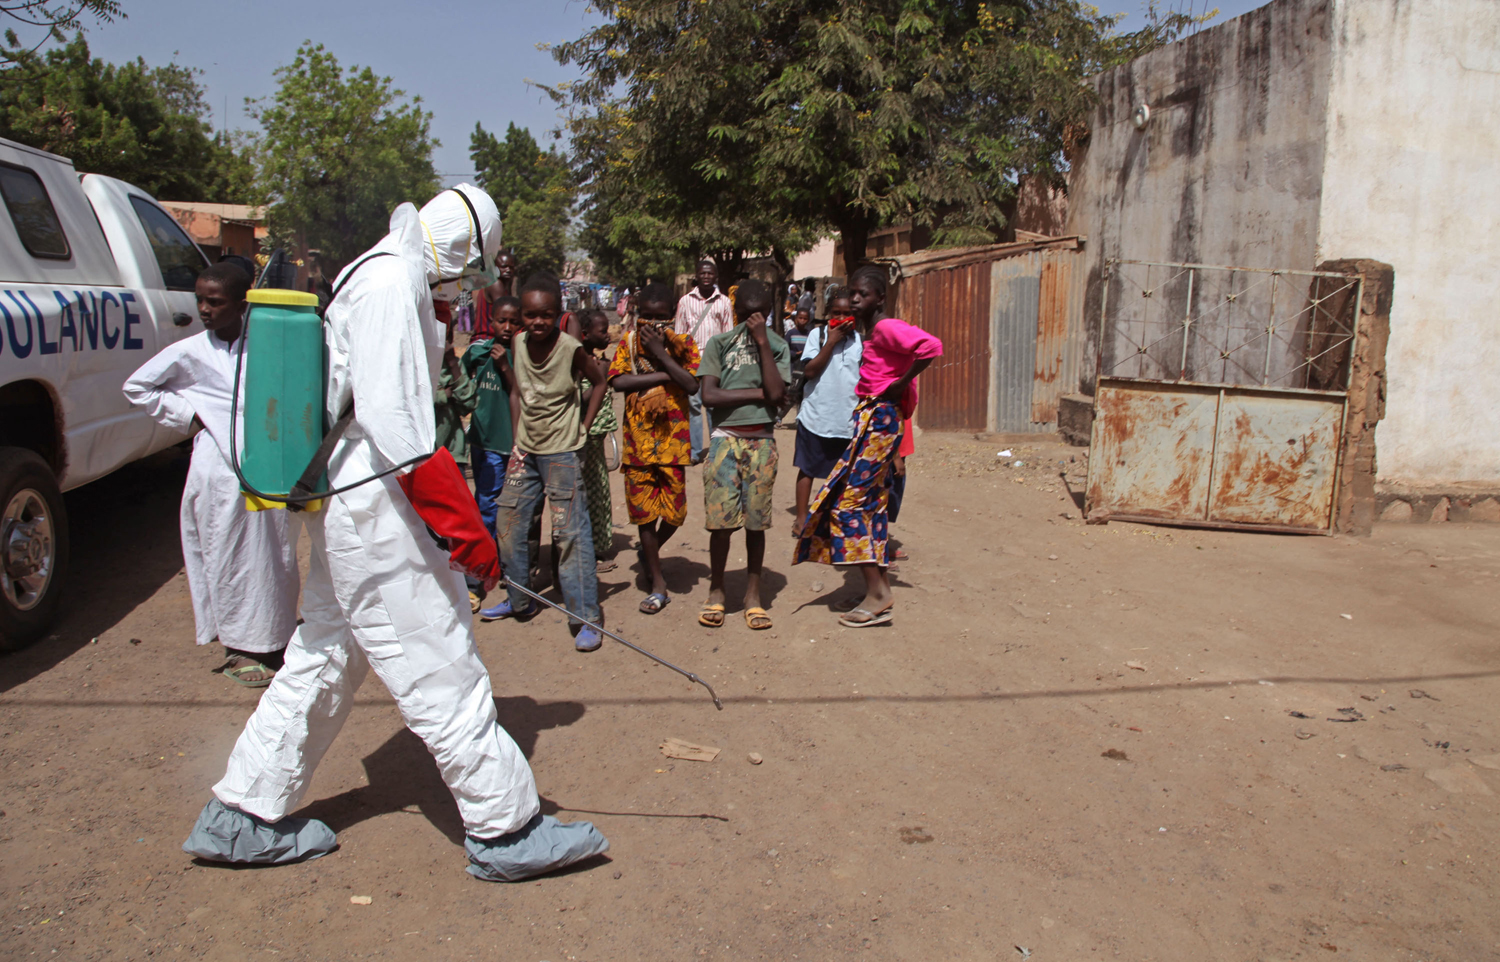 A health worker sprays disinfectants near a mosque, after the body of a man suspected of dying from the Ebola virus was washed inside before being buried  in Bamako, Mali